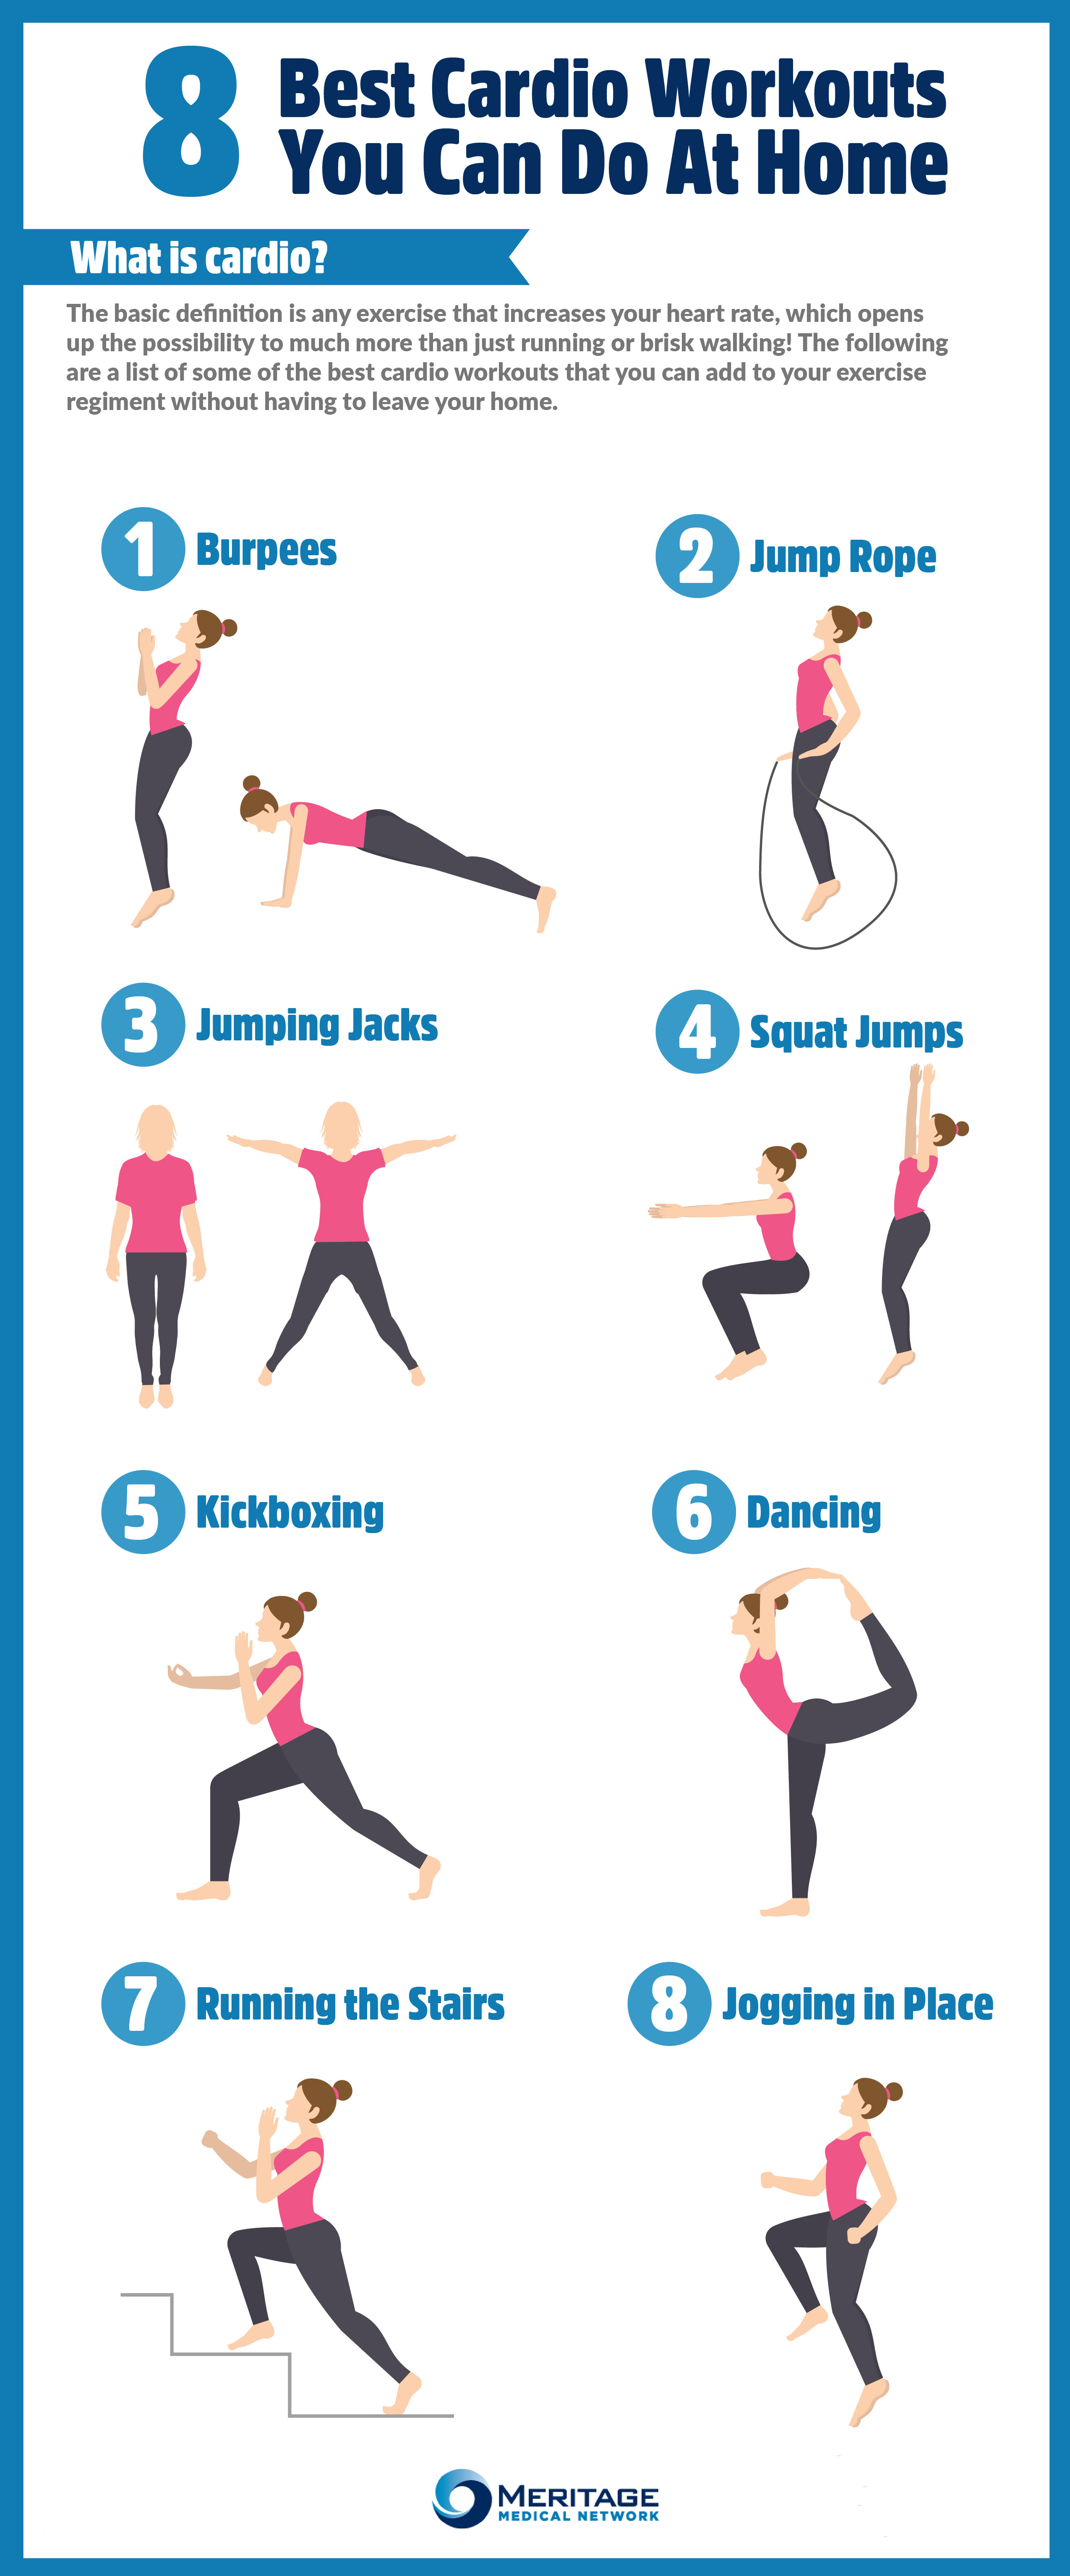 Best Cardio Workouts at Home